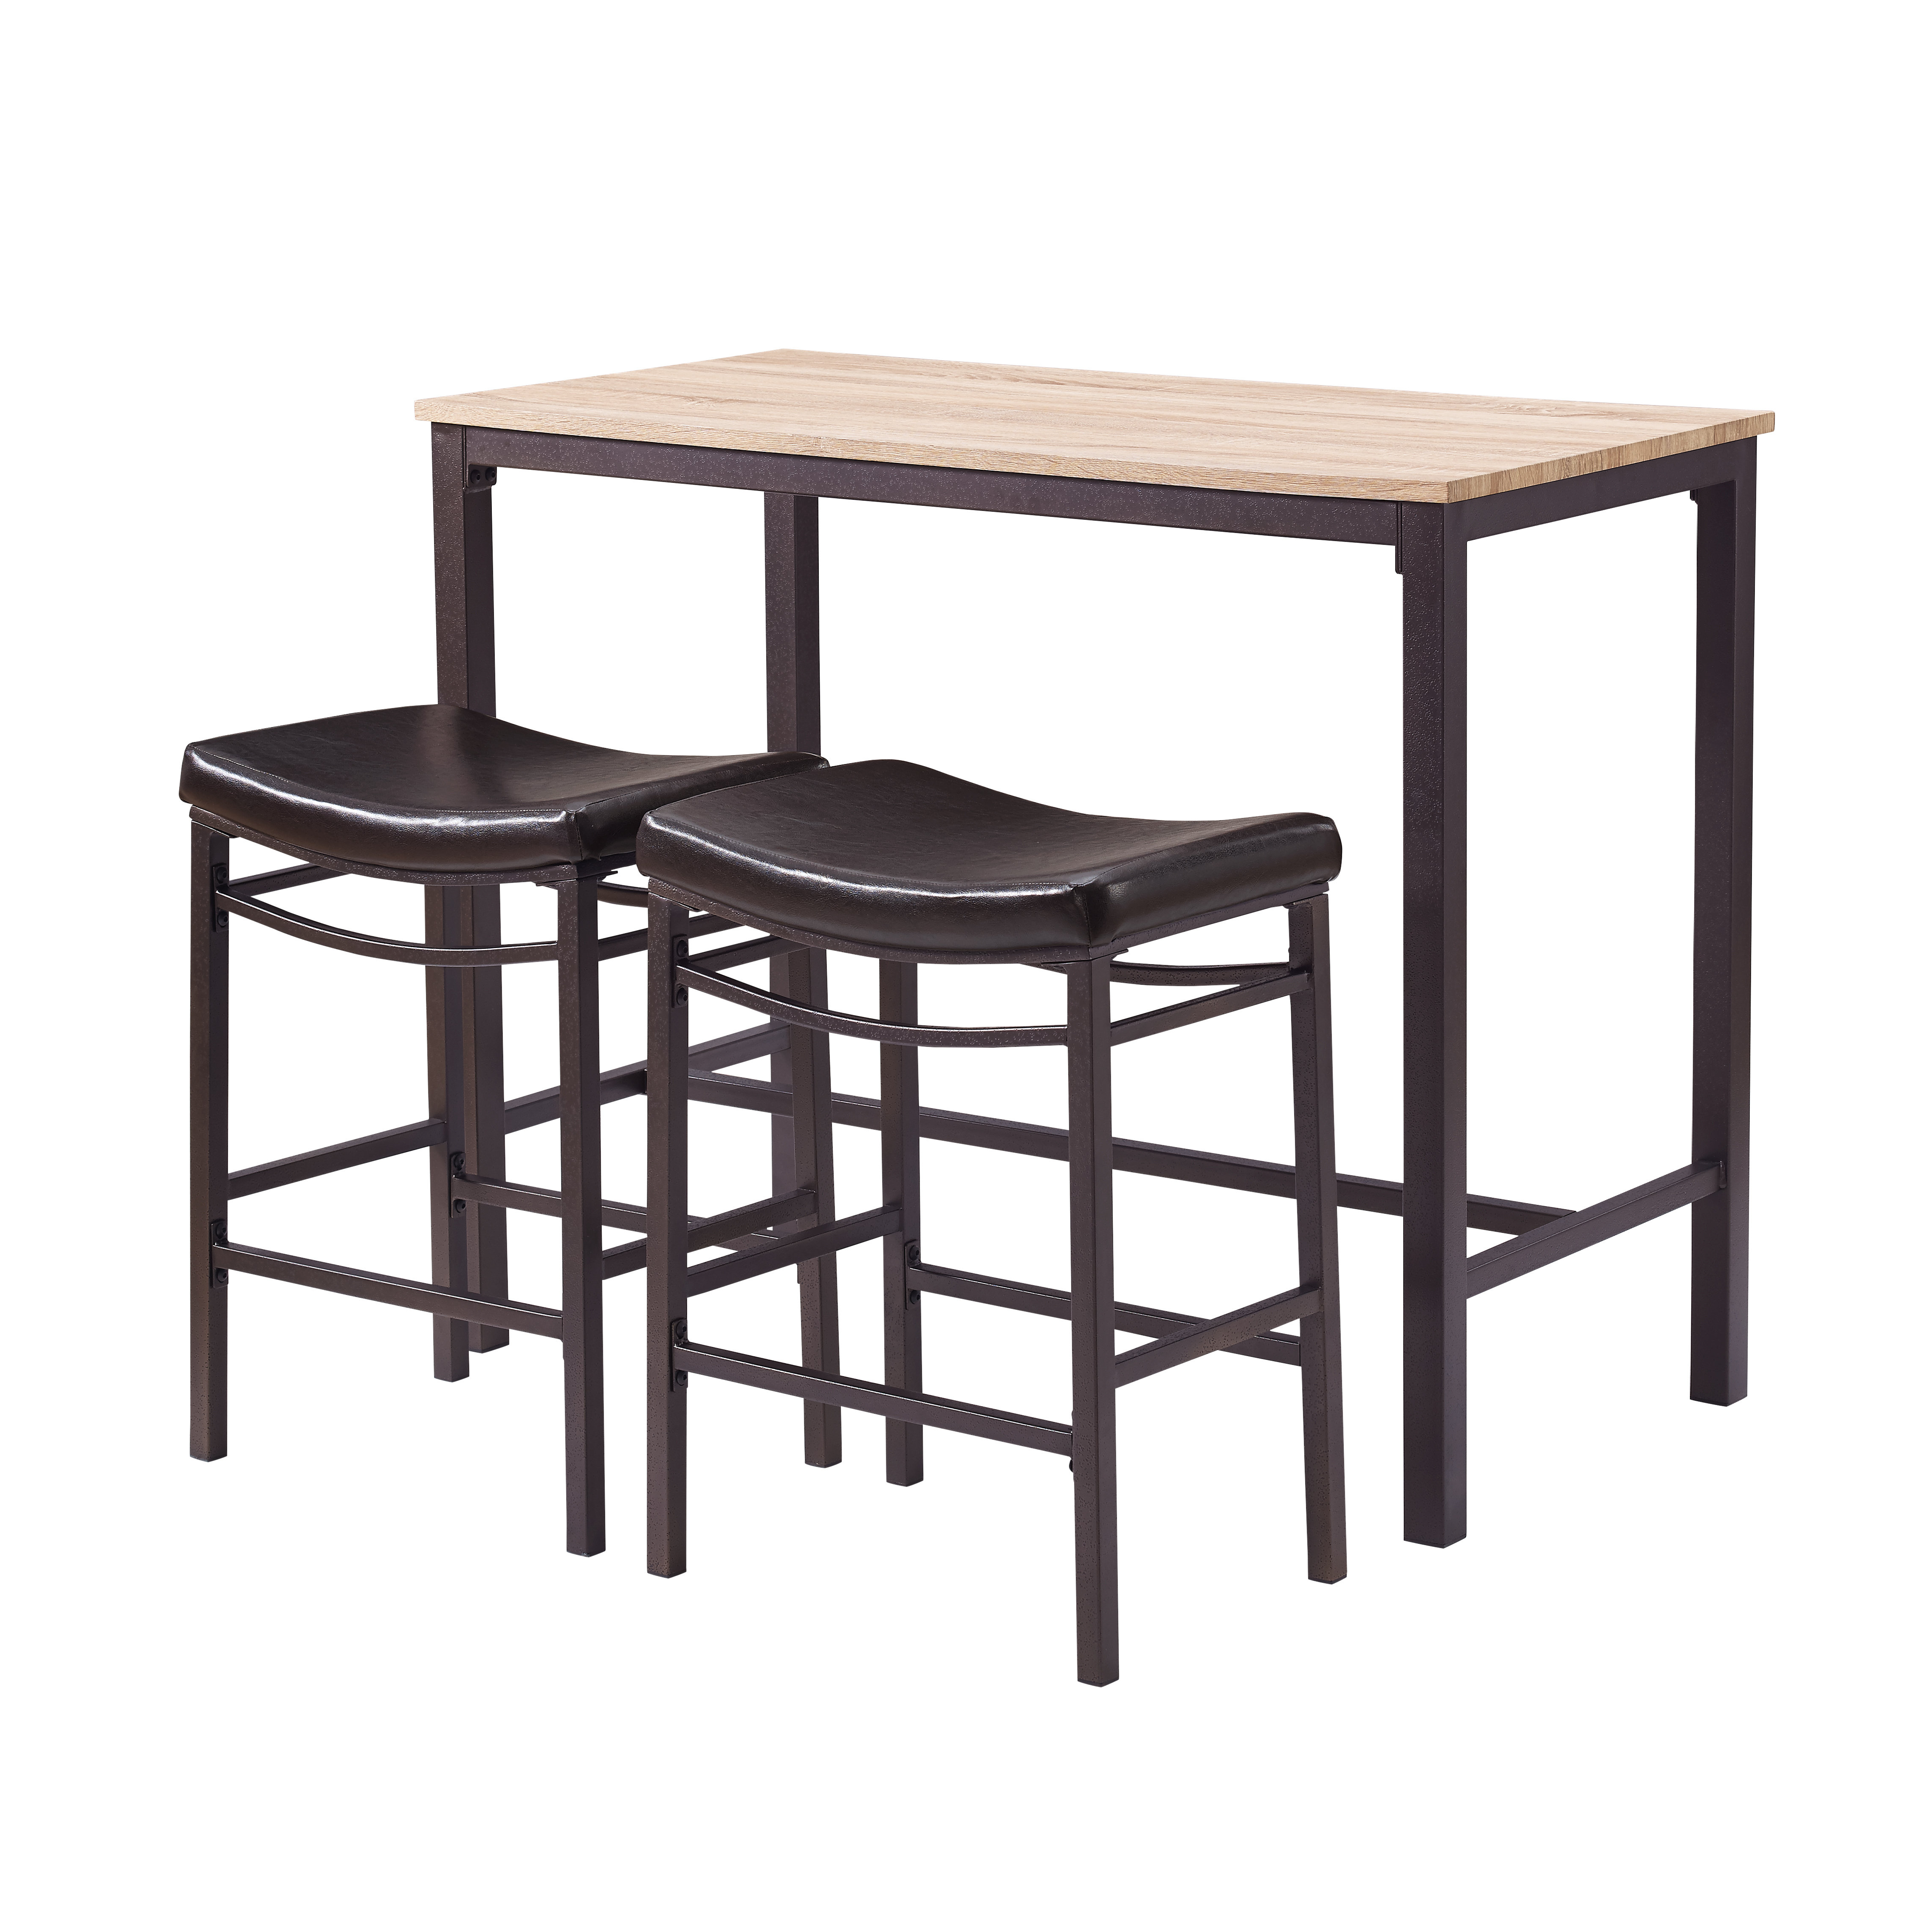 2020 Nutter 3 Piece Dining Sets Intended For Bezons 3 Piece Pub Table Set (View 1 of 25)